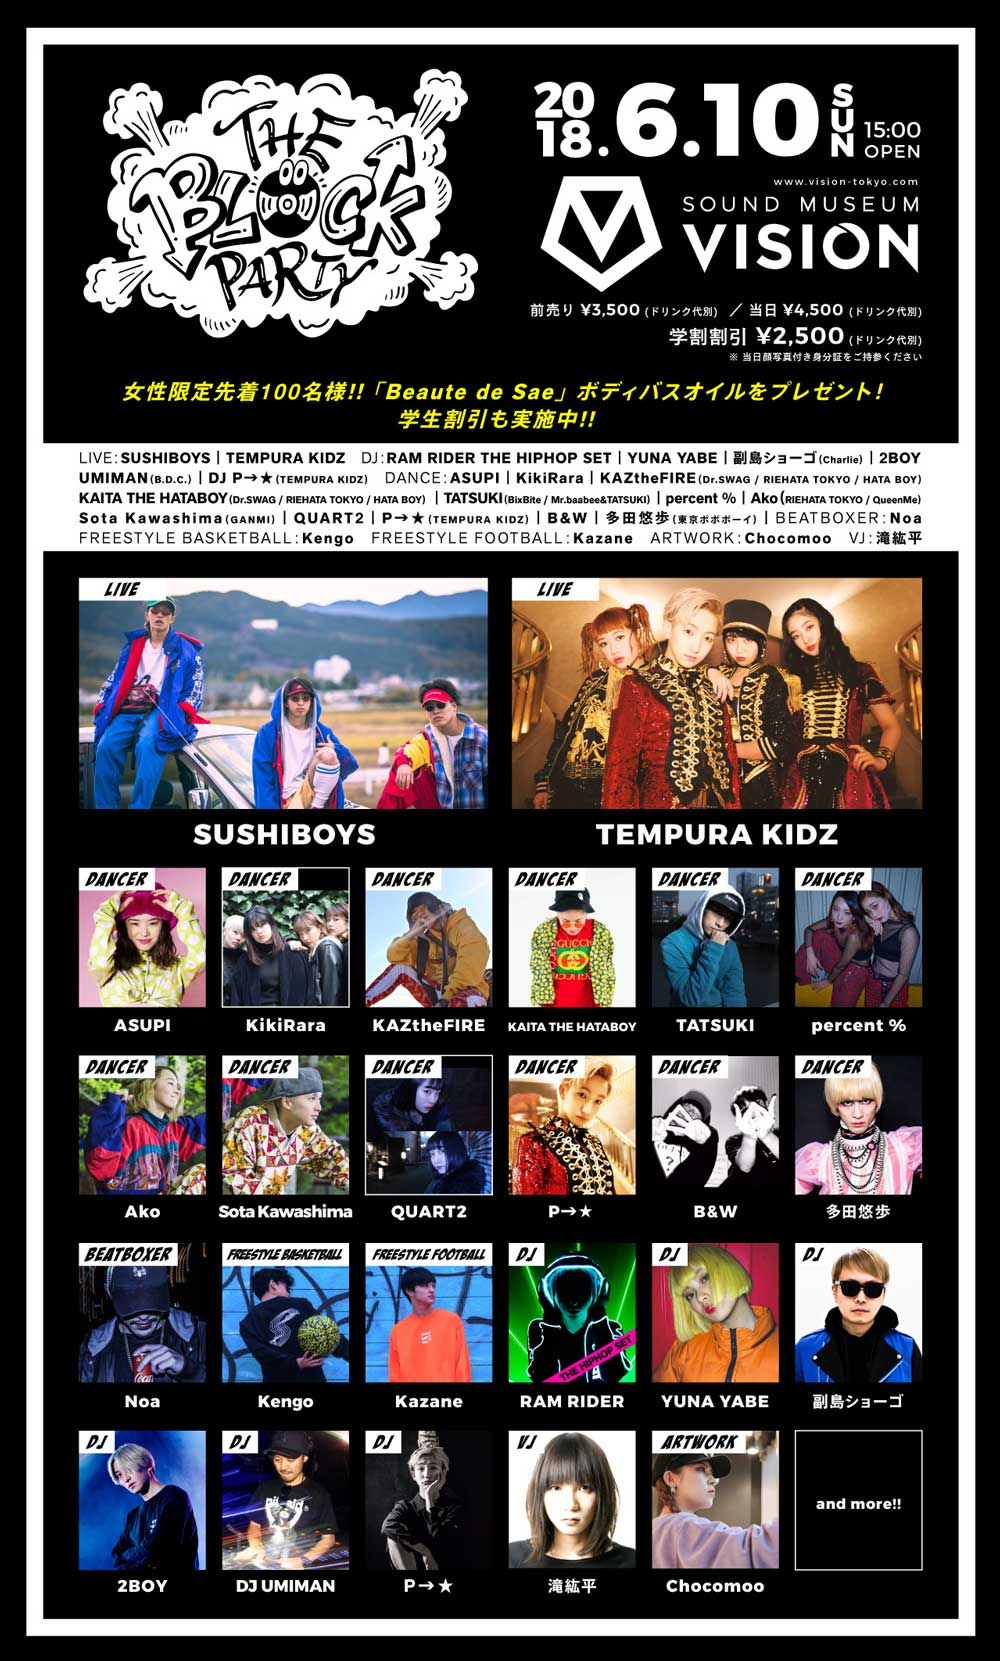 THE BLOCK PARTY Vol.5 -YU-KA & P→★(from TEMPURA KIDZ)presents-